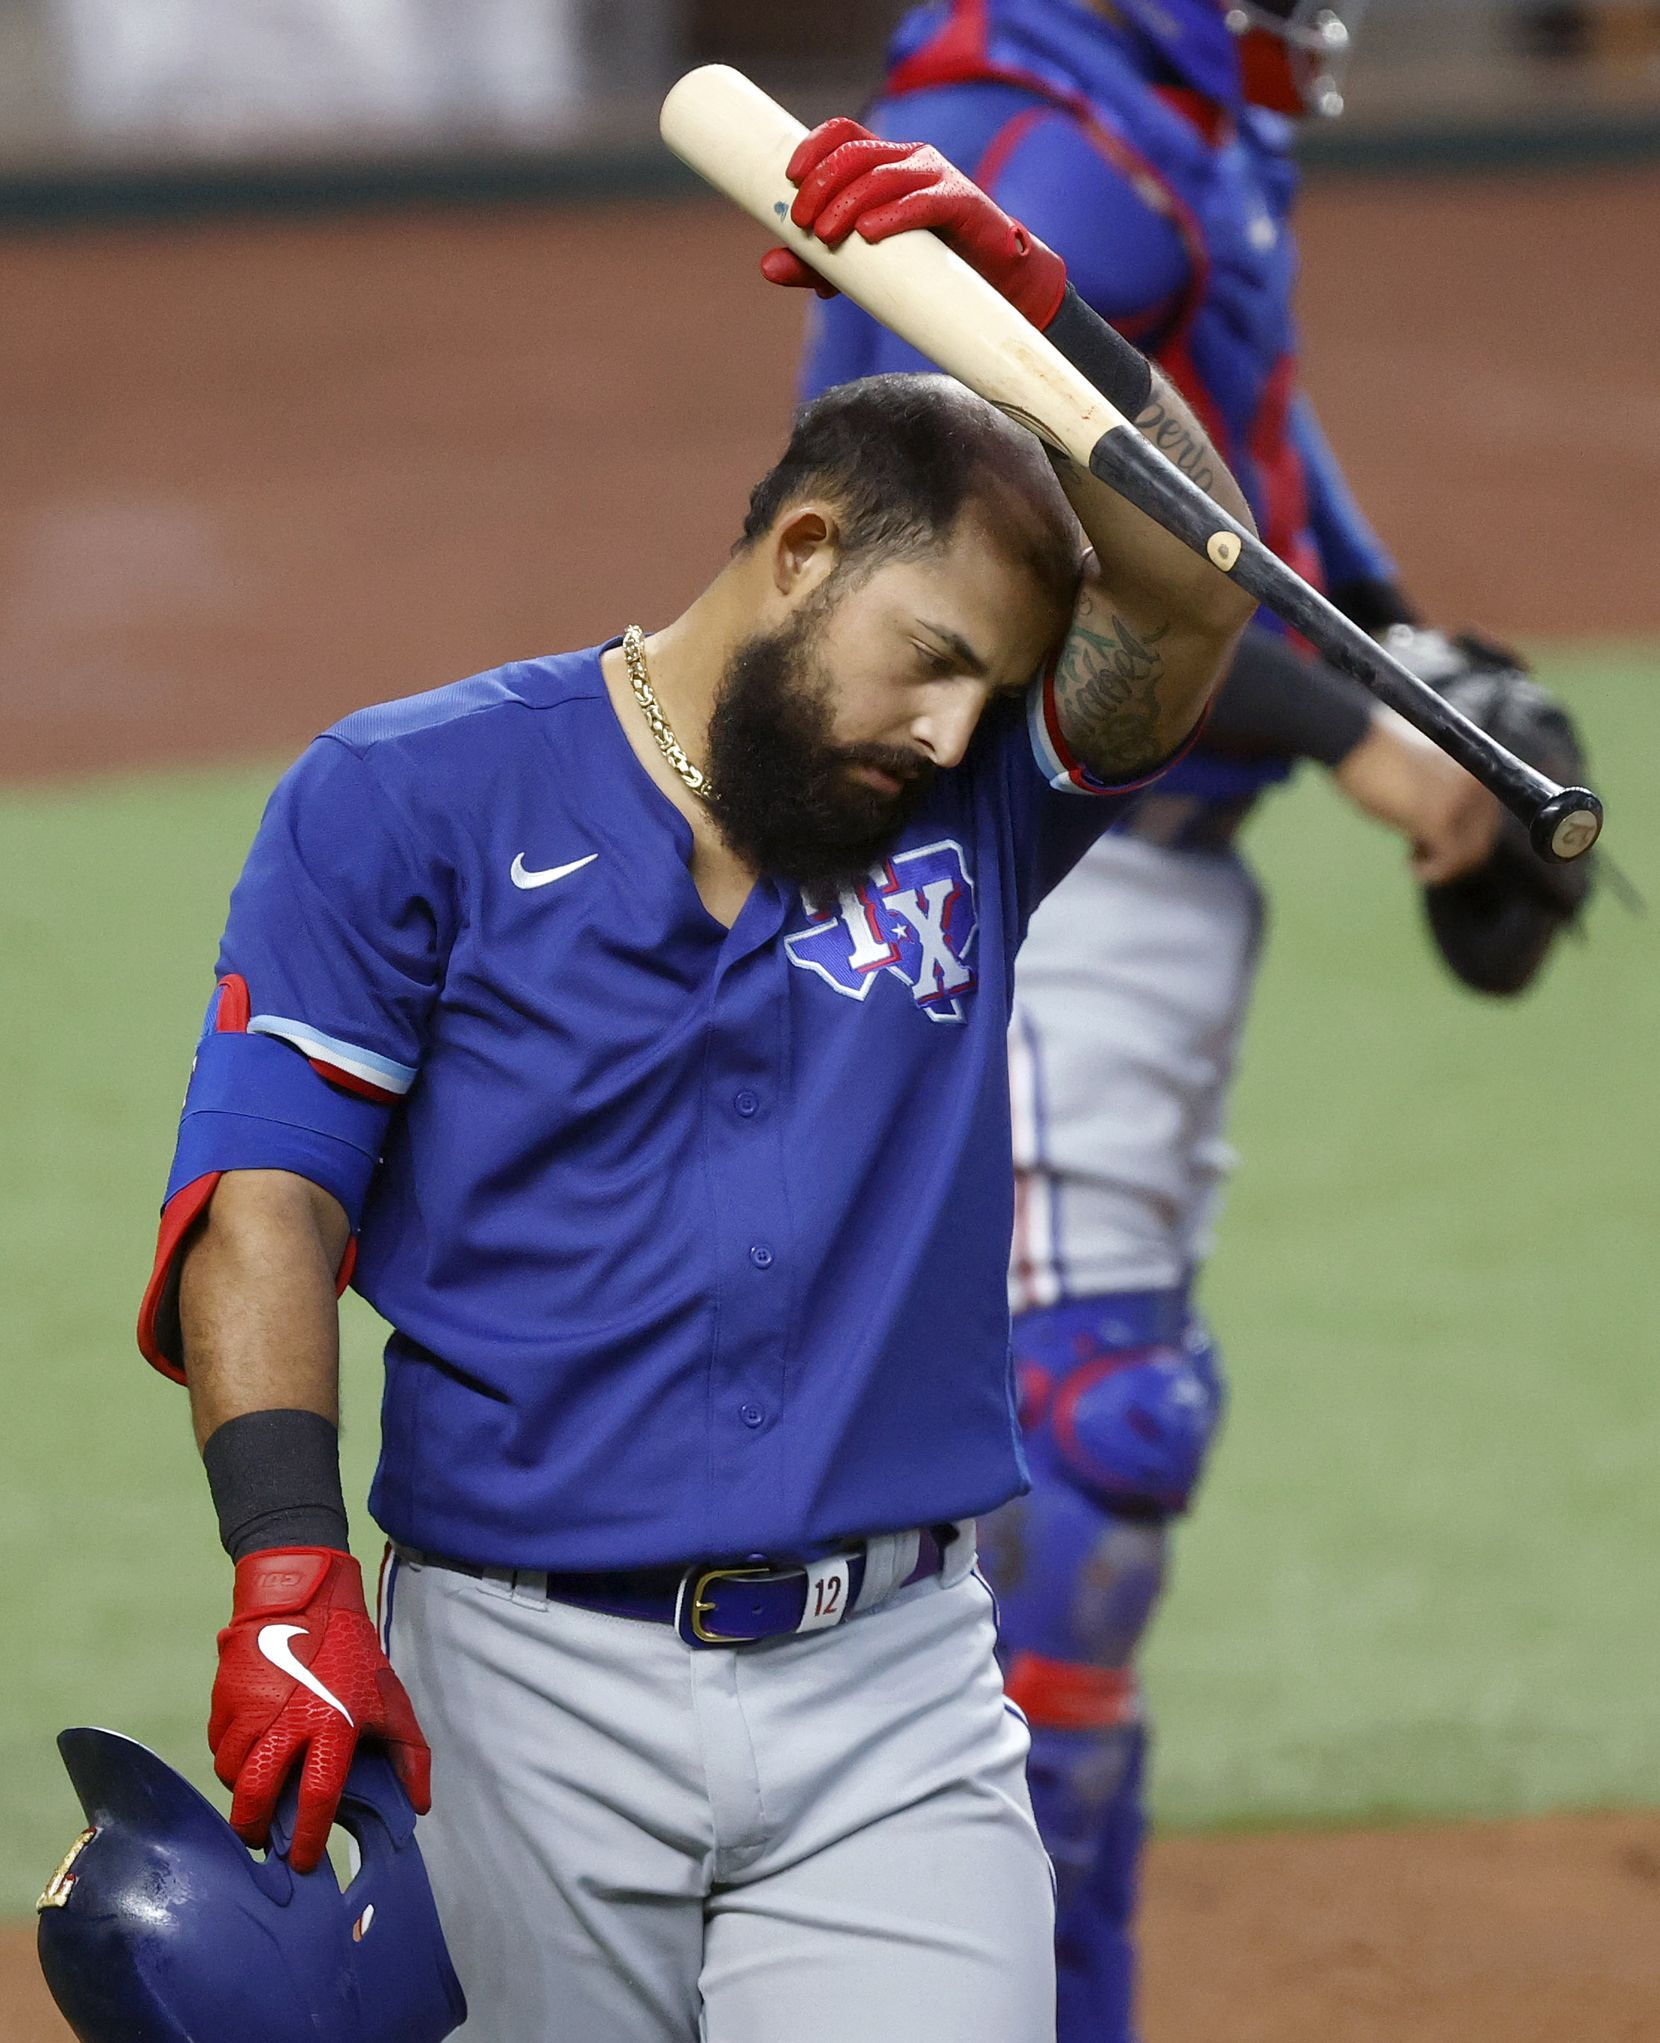 Texas Rangers batter Rougned Odor wipes his brow between pitches during a simulated Summer Camp game inside Globe Life Field in Arlington, Texas, Thursday, July 9, 2020. (Tom Fox/The Dallas Morning News)